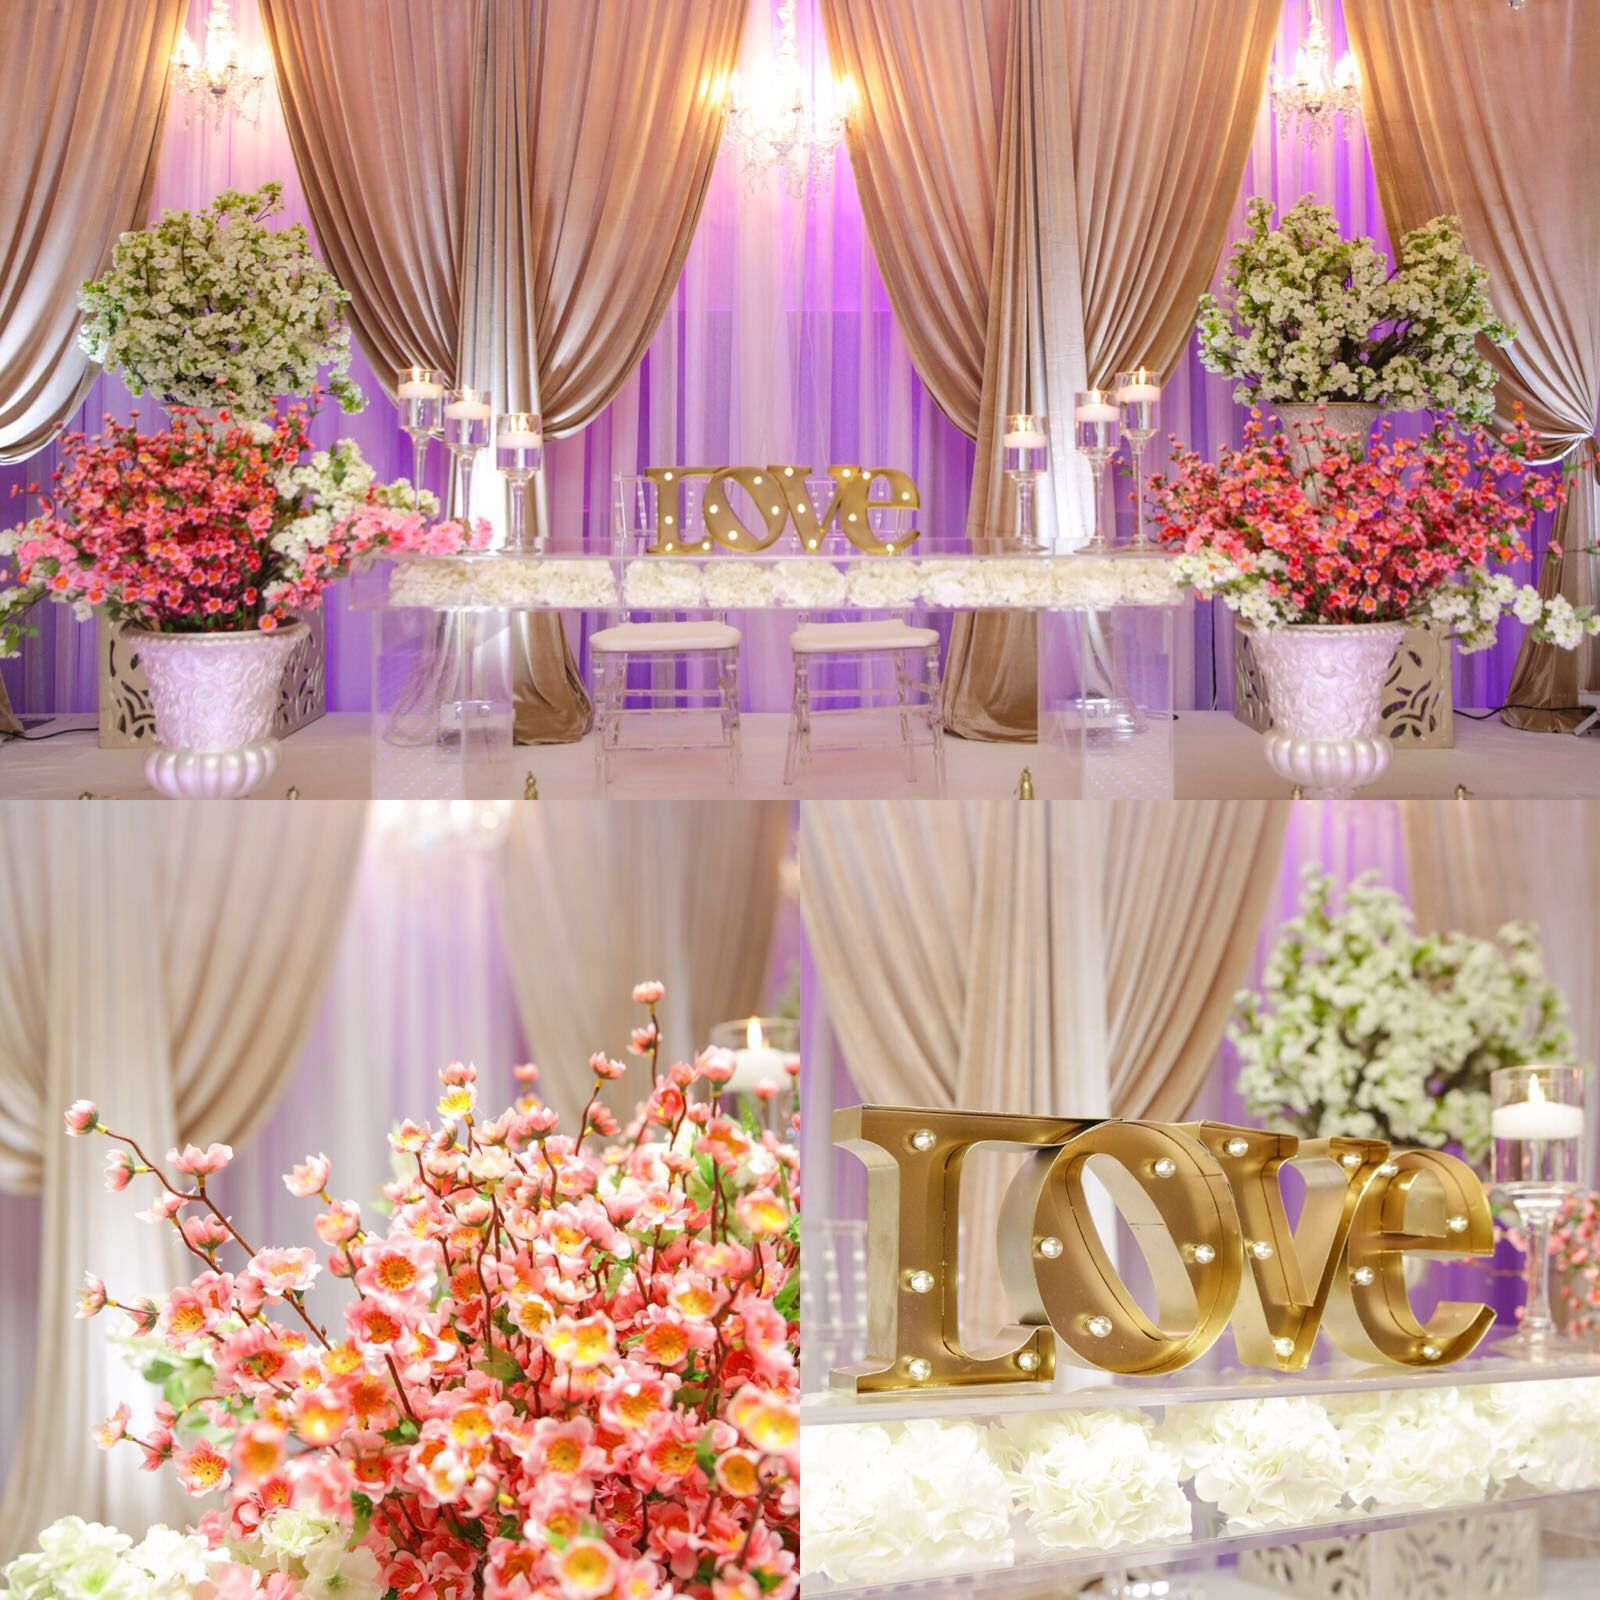 Wedding stage decoration images in hd  Pin by Jastentrentals Decor on Top WeddingDecor Calgary  Pinterest